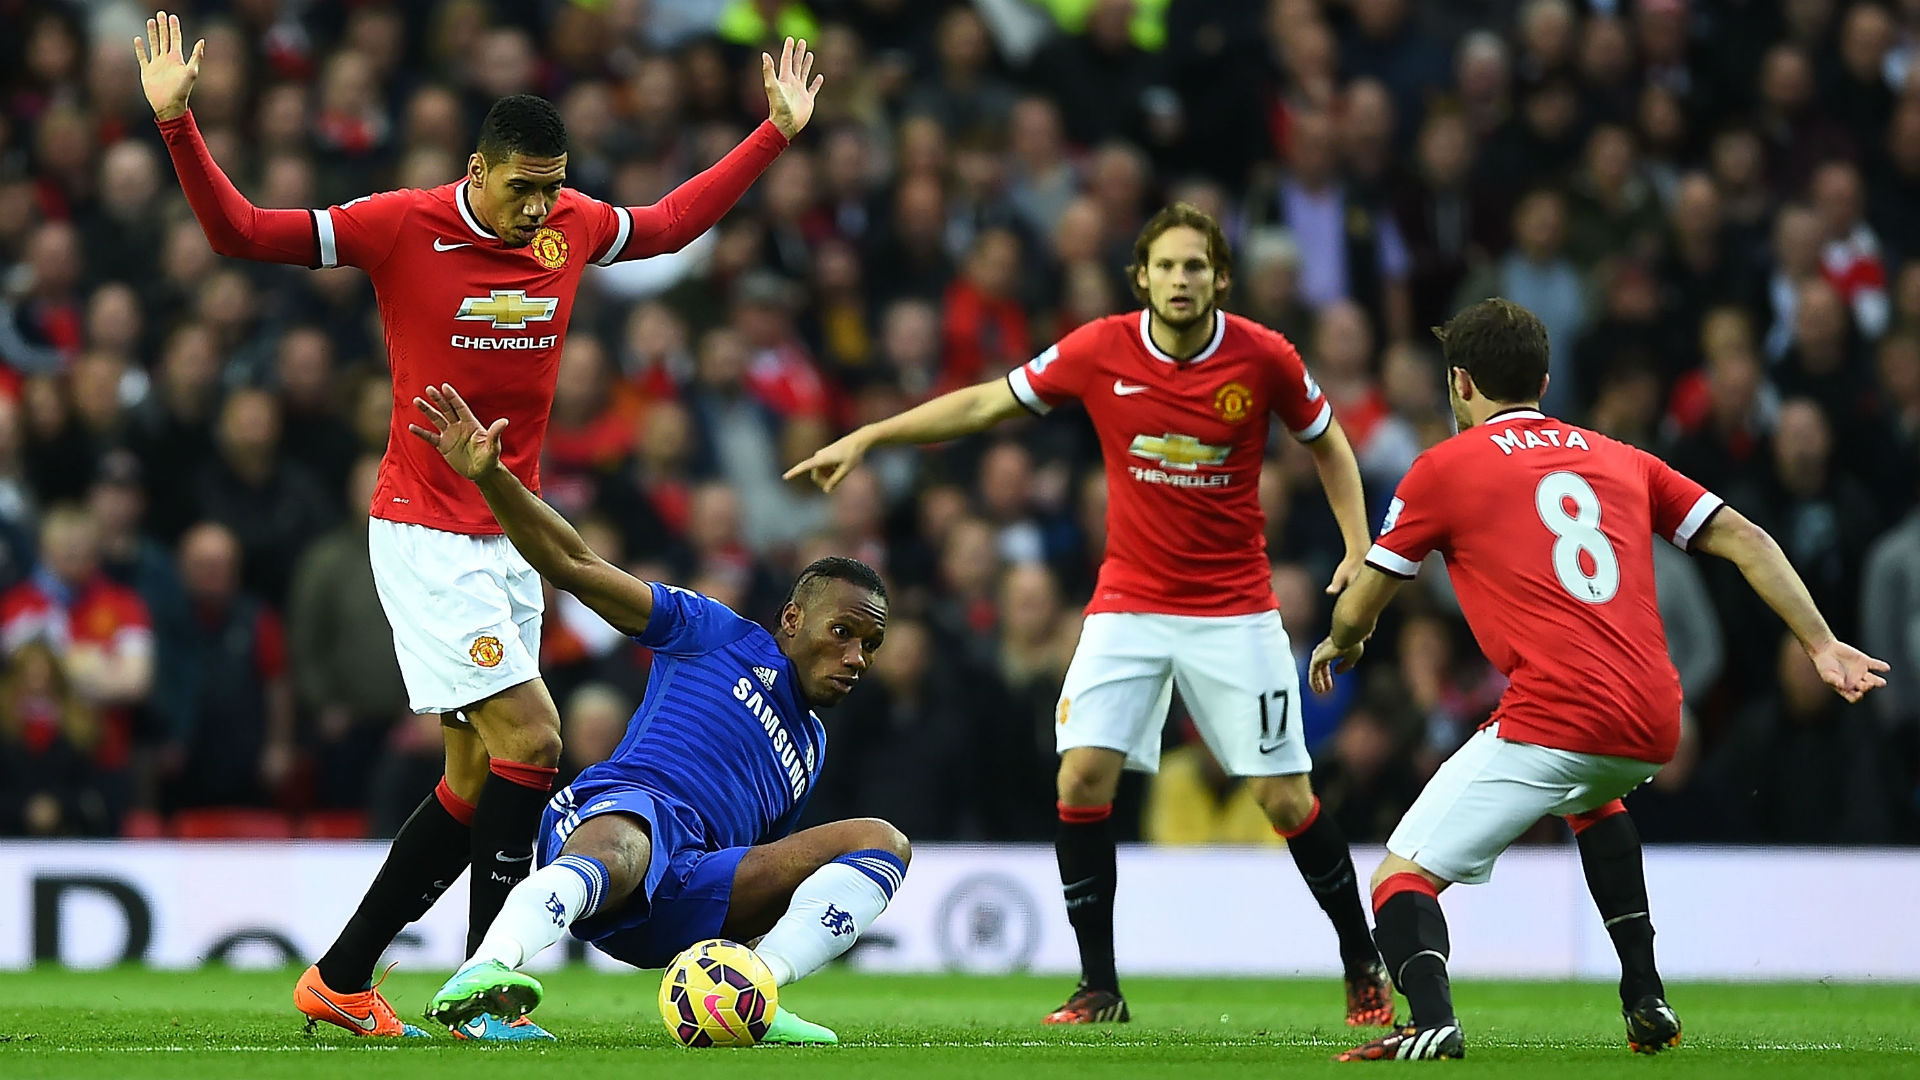 chelsea vs man united - photo #7